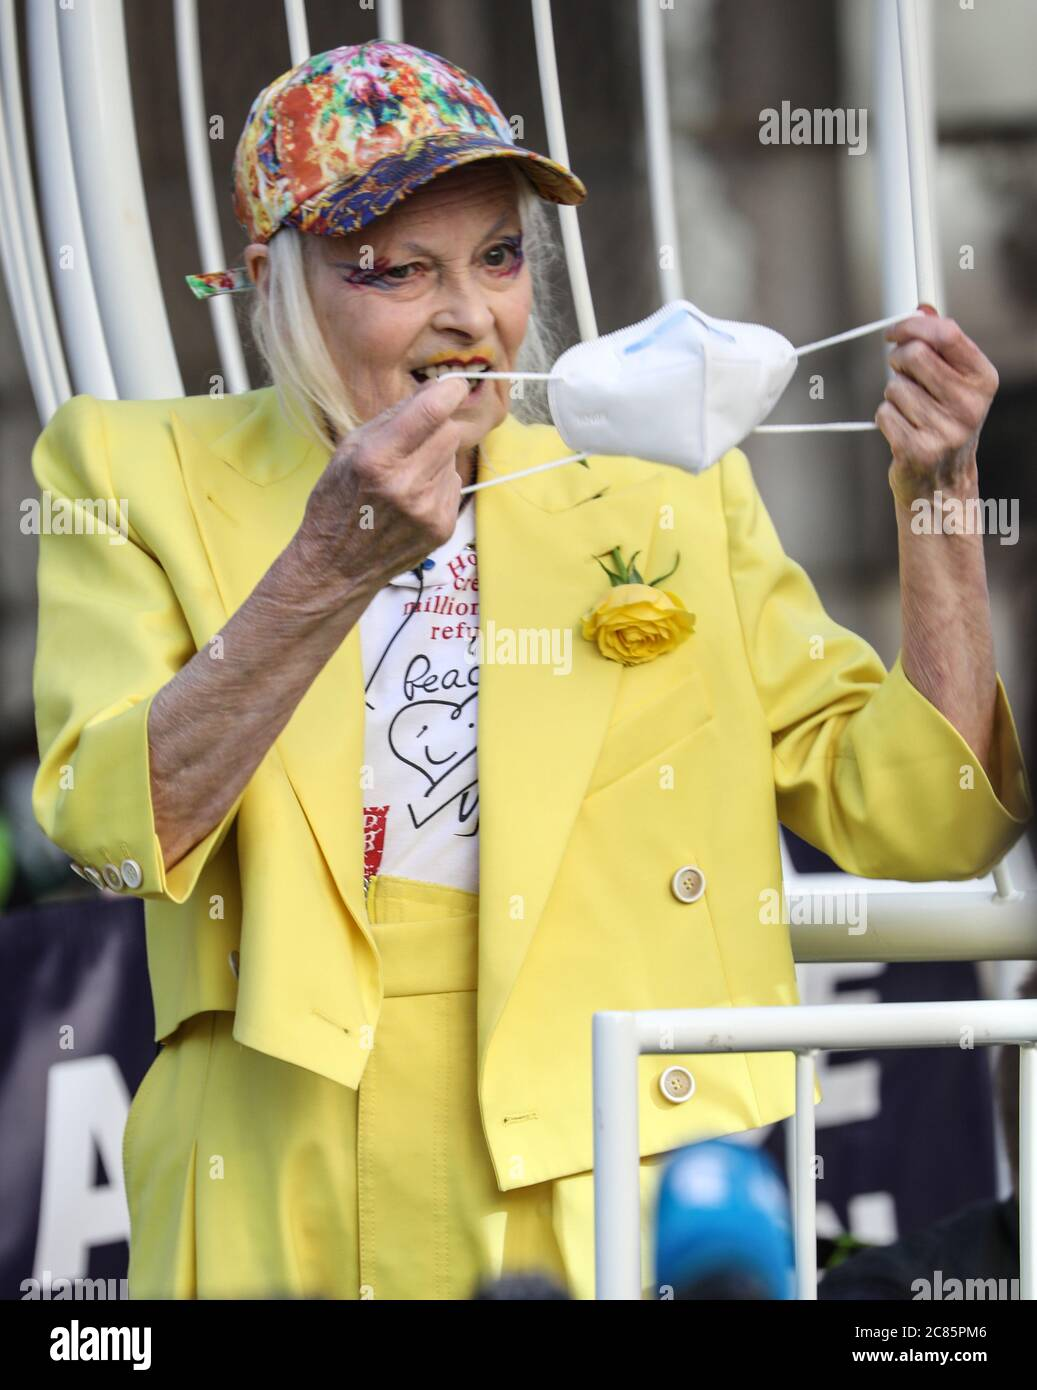 Vivienne Westwood Seen Holding A Face Mask During The Protest Fashion Designer And Business Woman Dame